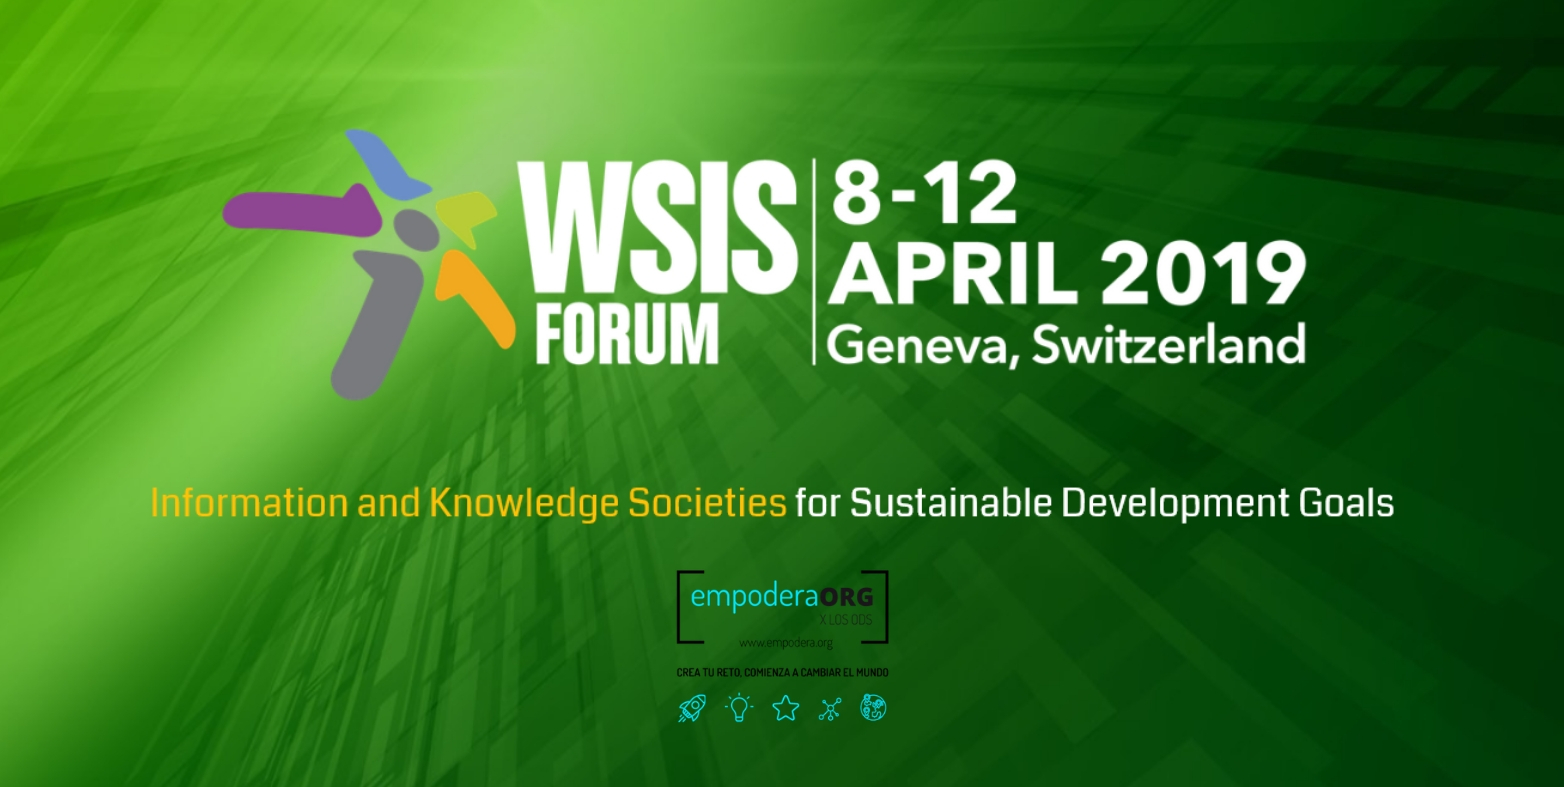 Fundación Cibervoluntarios takes part in the 10th Anniversary of the WSIS in Geneva: WSIS Action Lines and the #2030Agenda